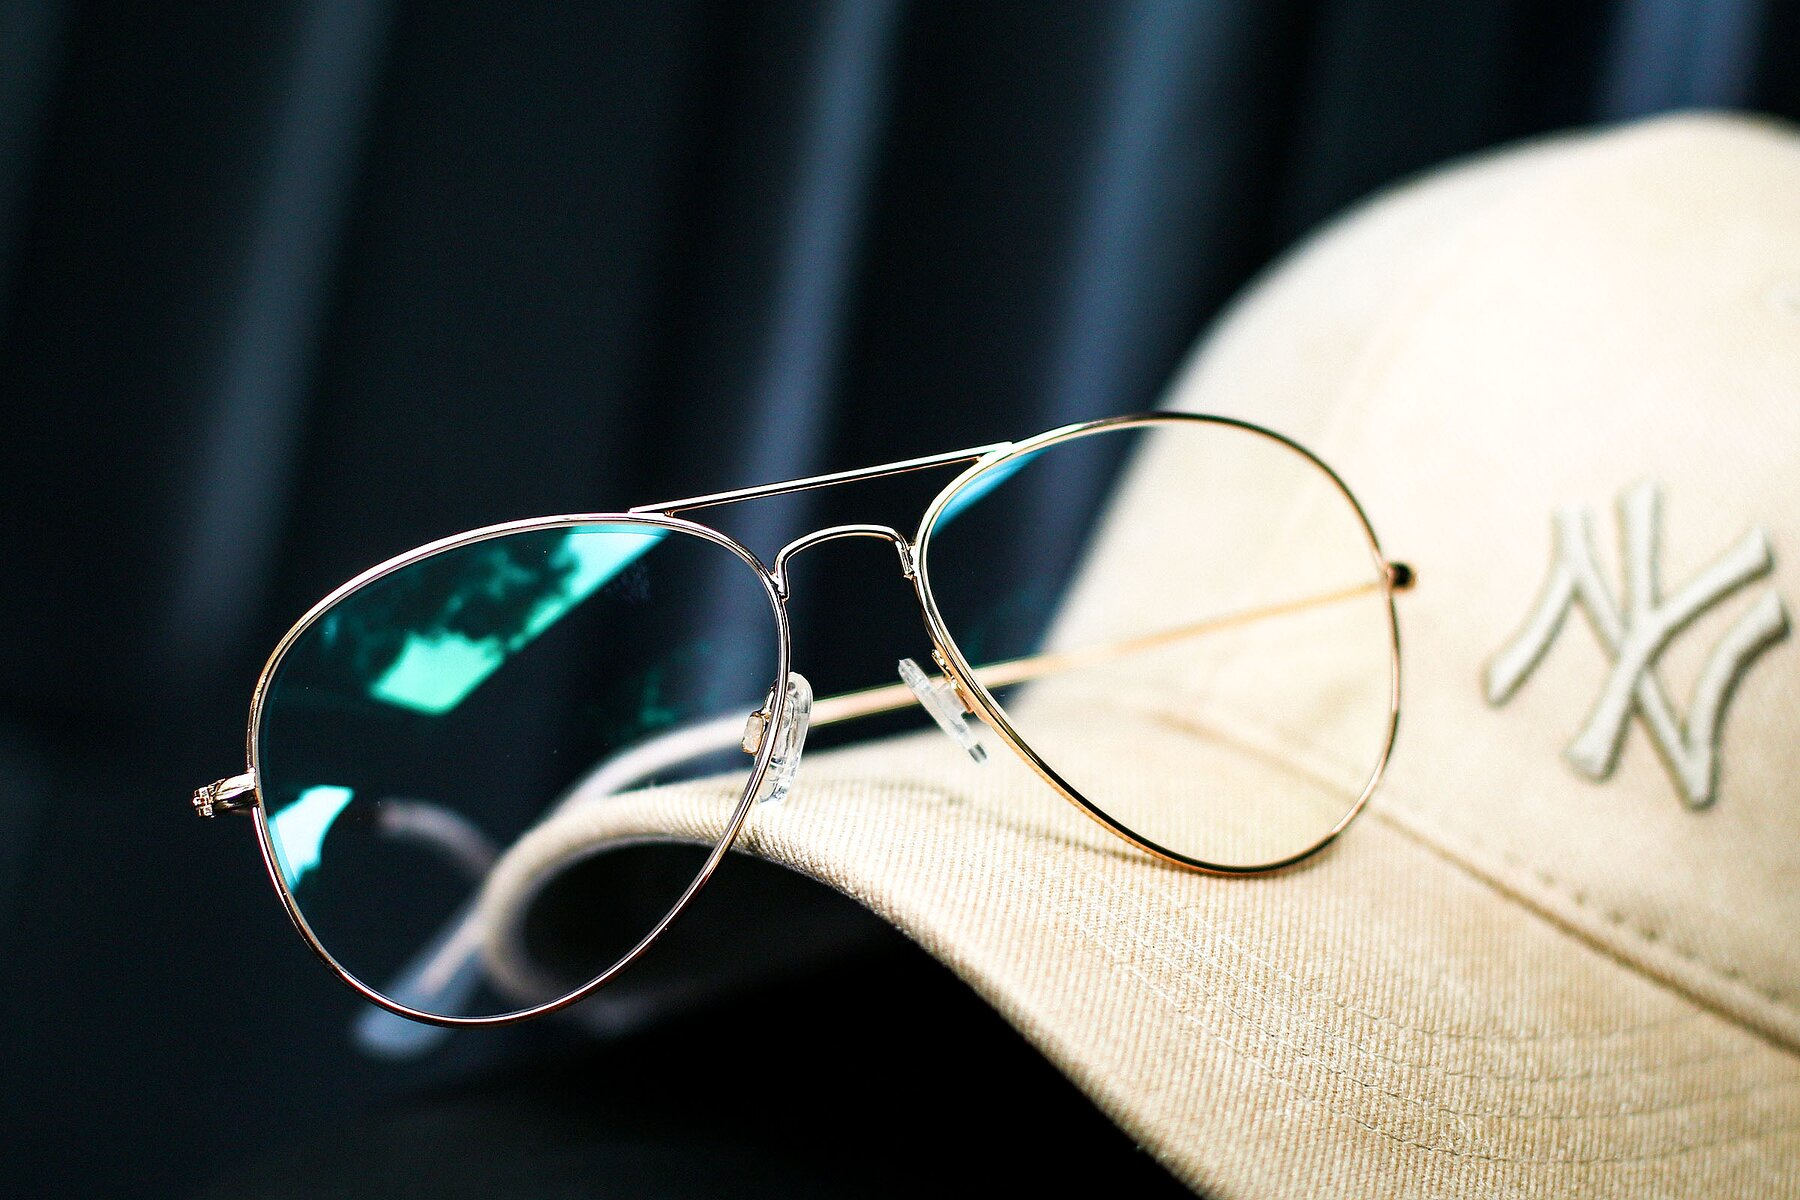 Lifestyle photography #4 of Yesterday in Shiny Gold with Clear Eyeglass Lenses